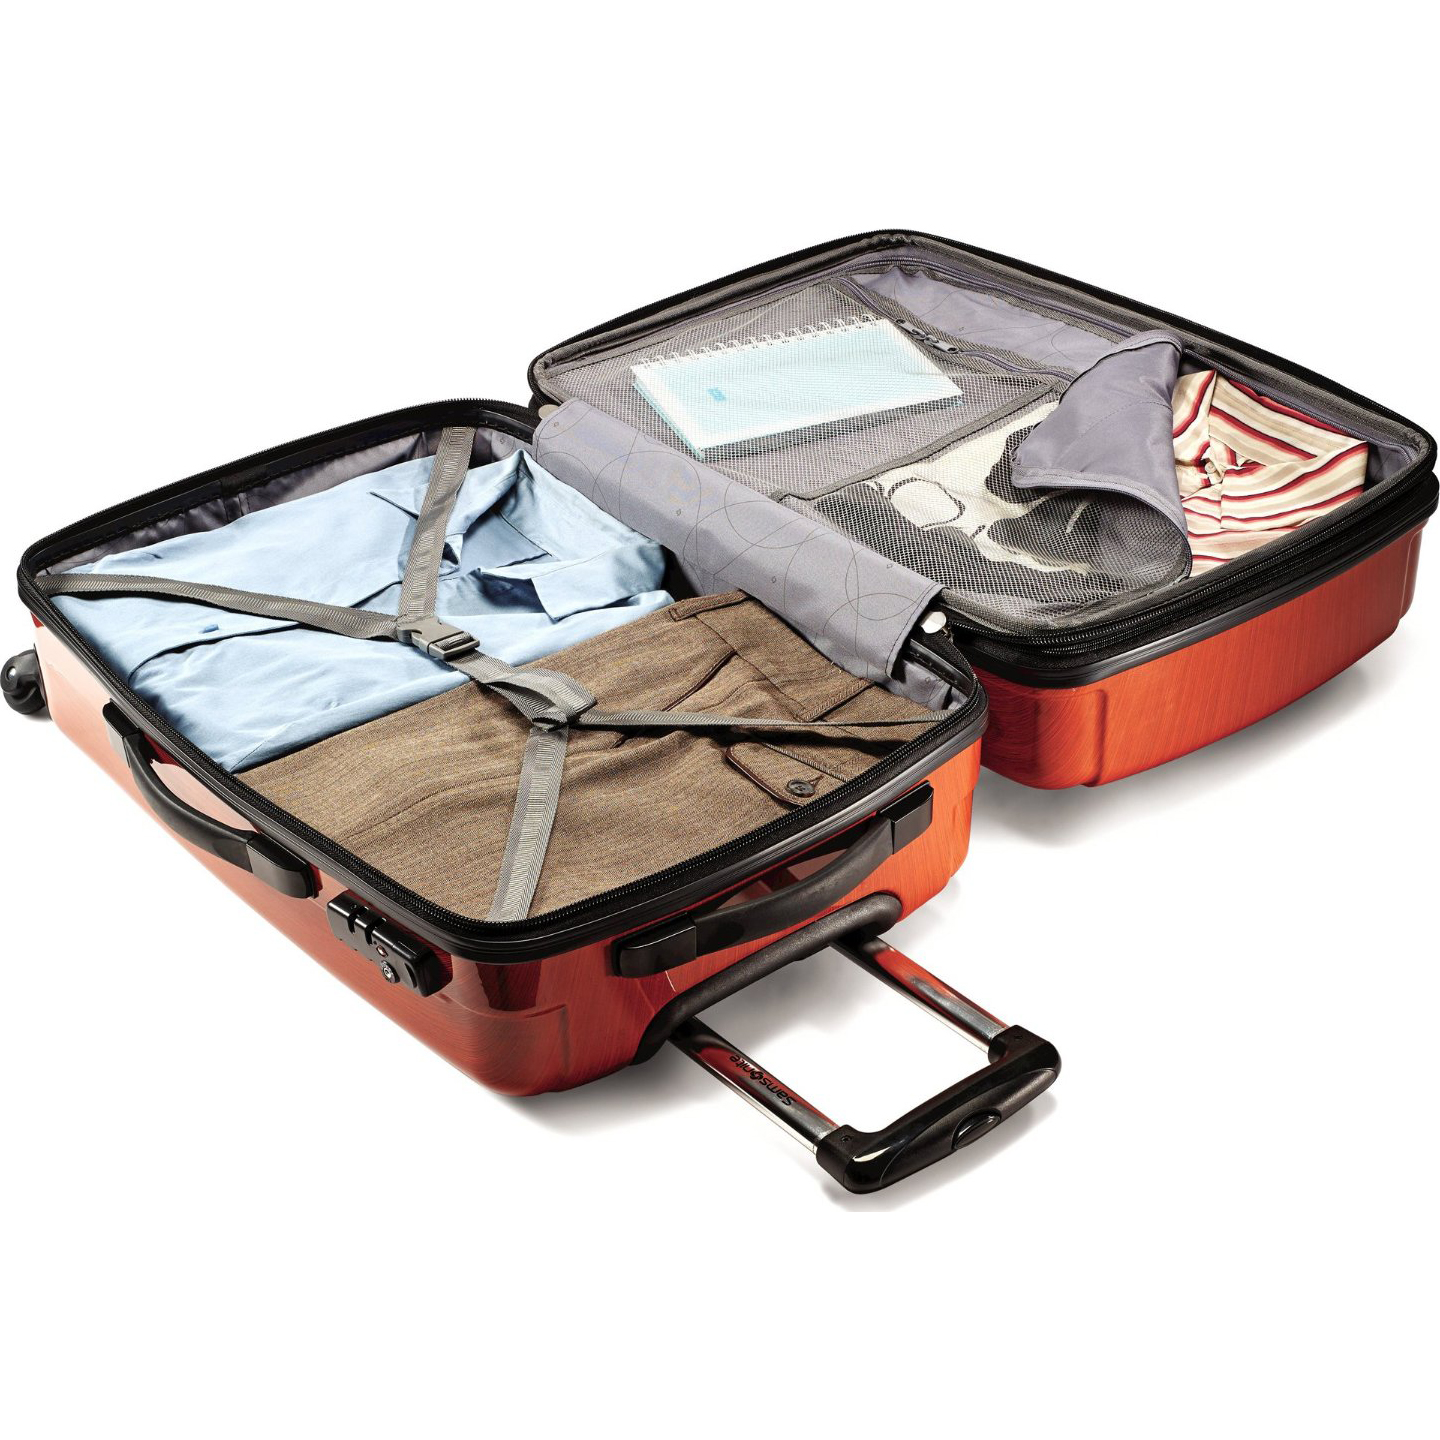 Samsonite-Winfield-2-Fashion-24-Inch-Hardside-Spinner-Luggage-Suitcase-4-Colors thumbnail 10